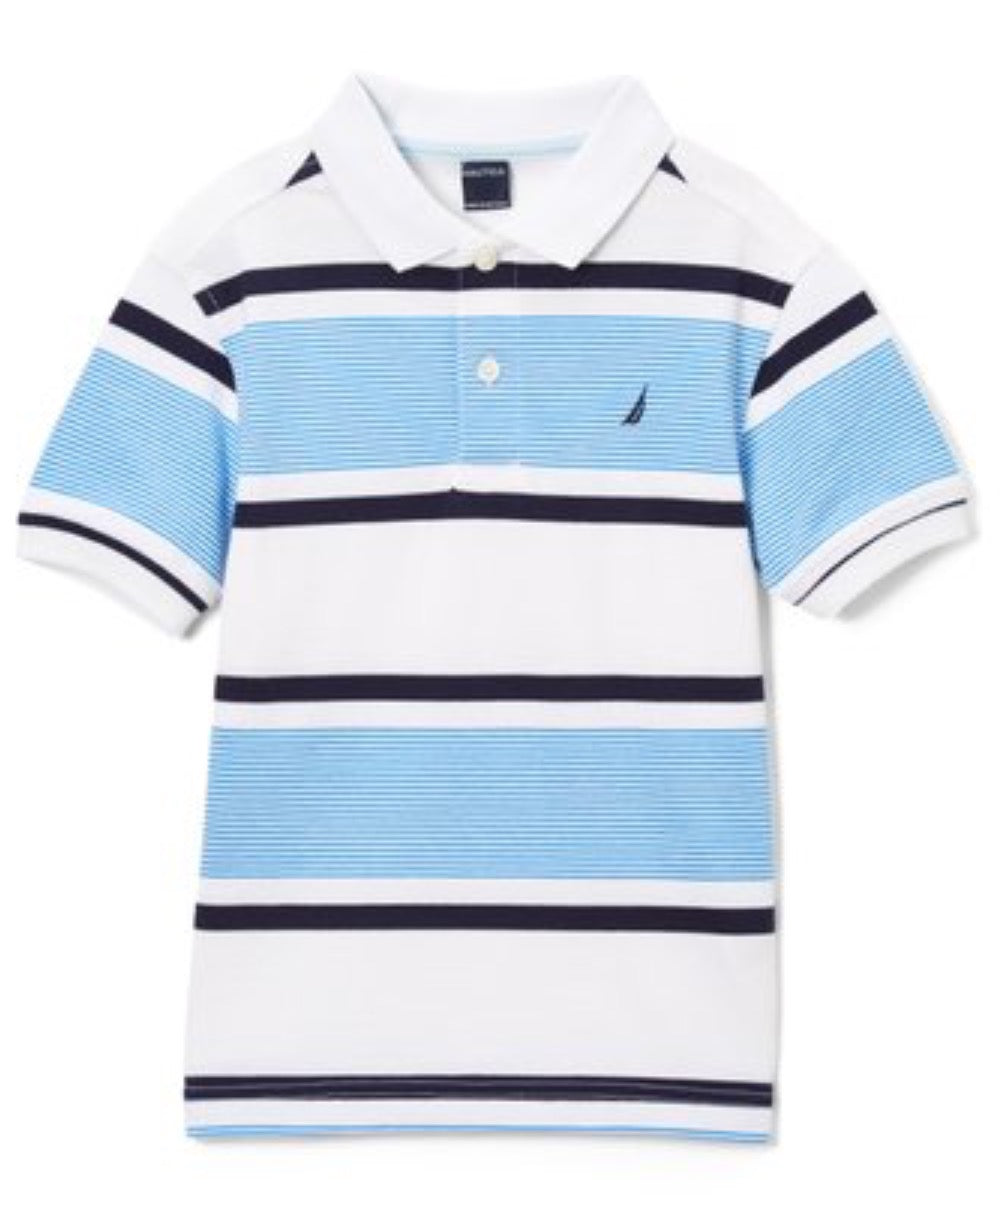 US Polo Short Sleeve White & Blue Polo Shirt